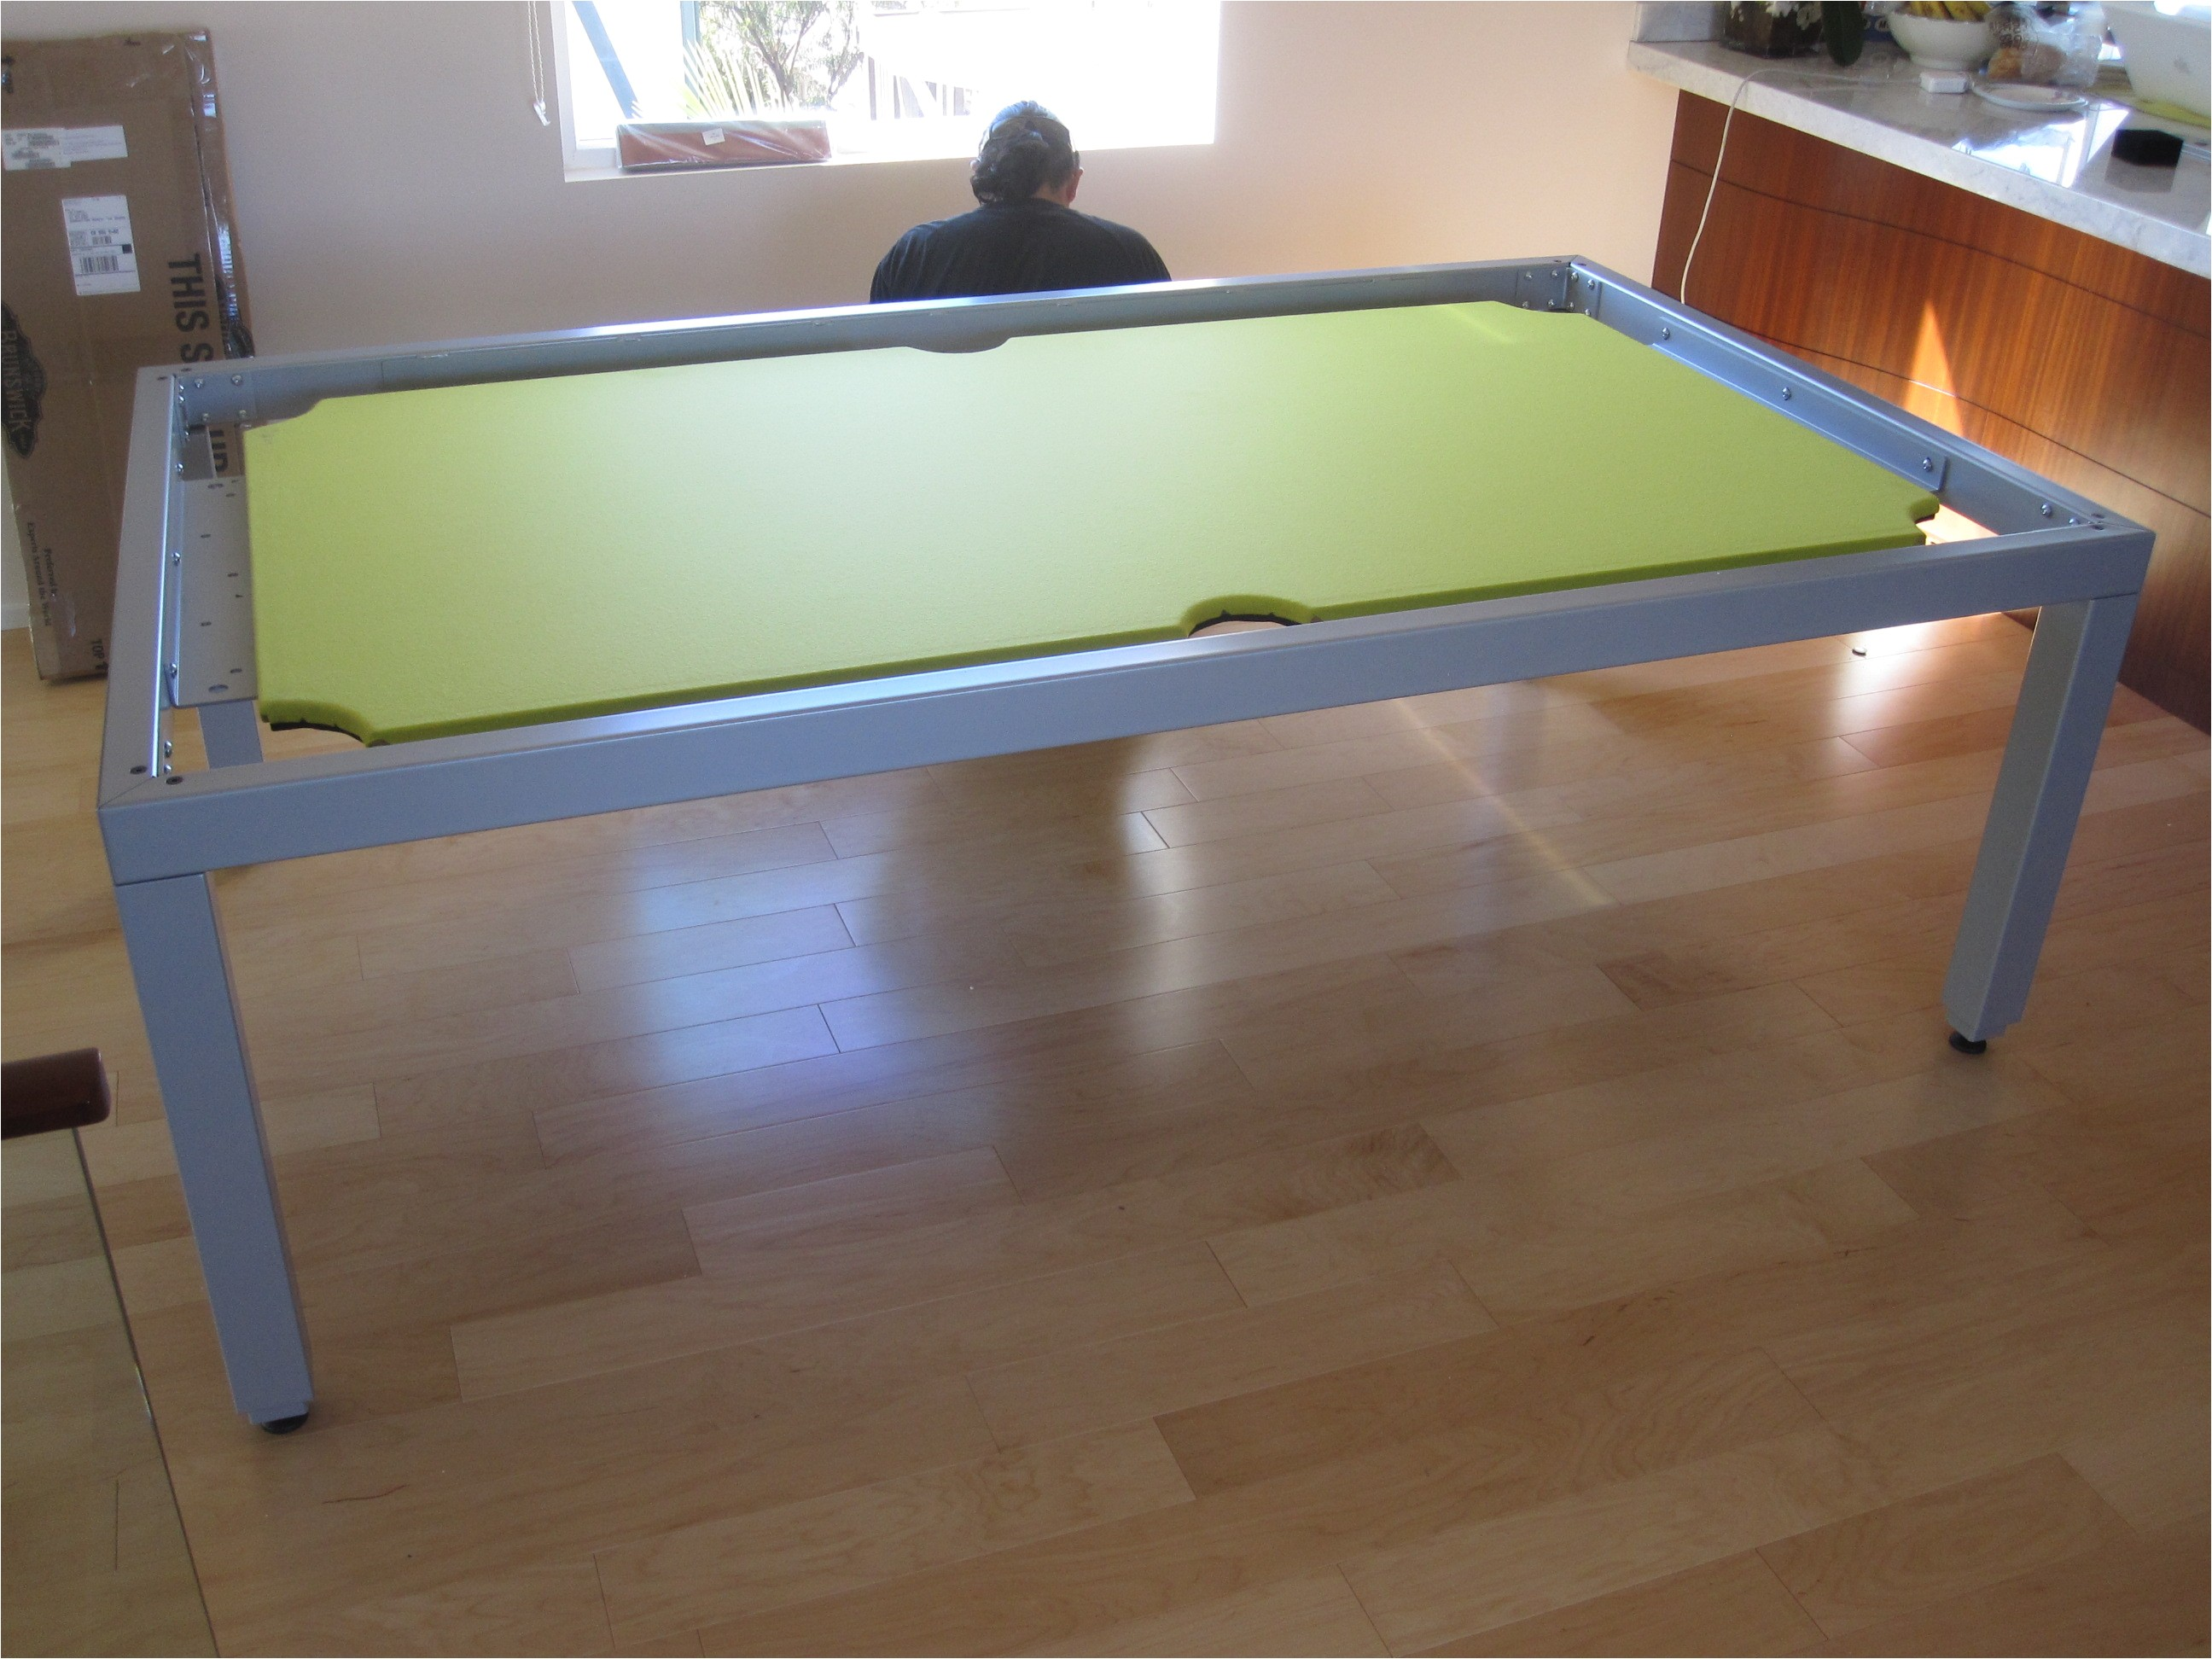 Top 4 Pool Table Dining Tables 2019 Reviews • 24OnlineReview